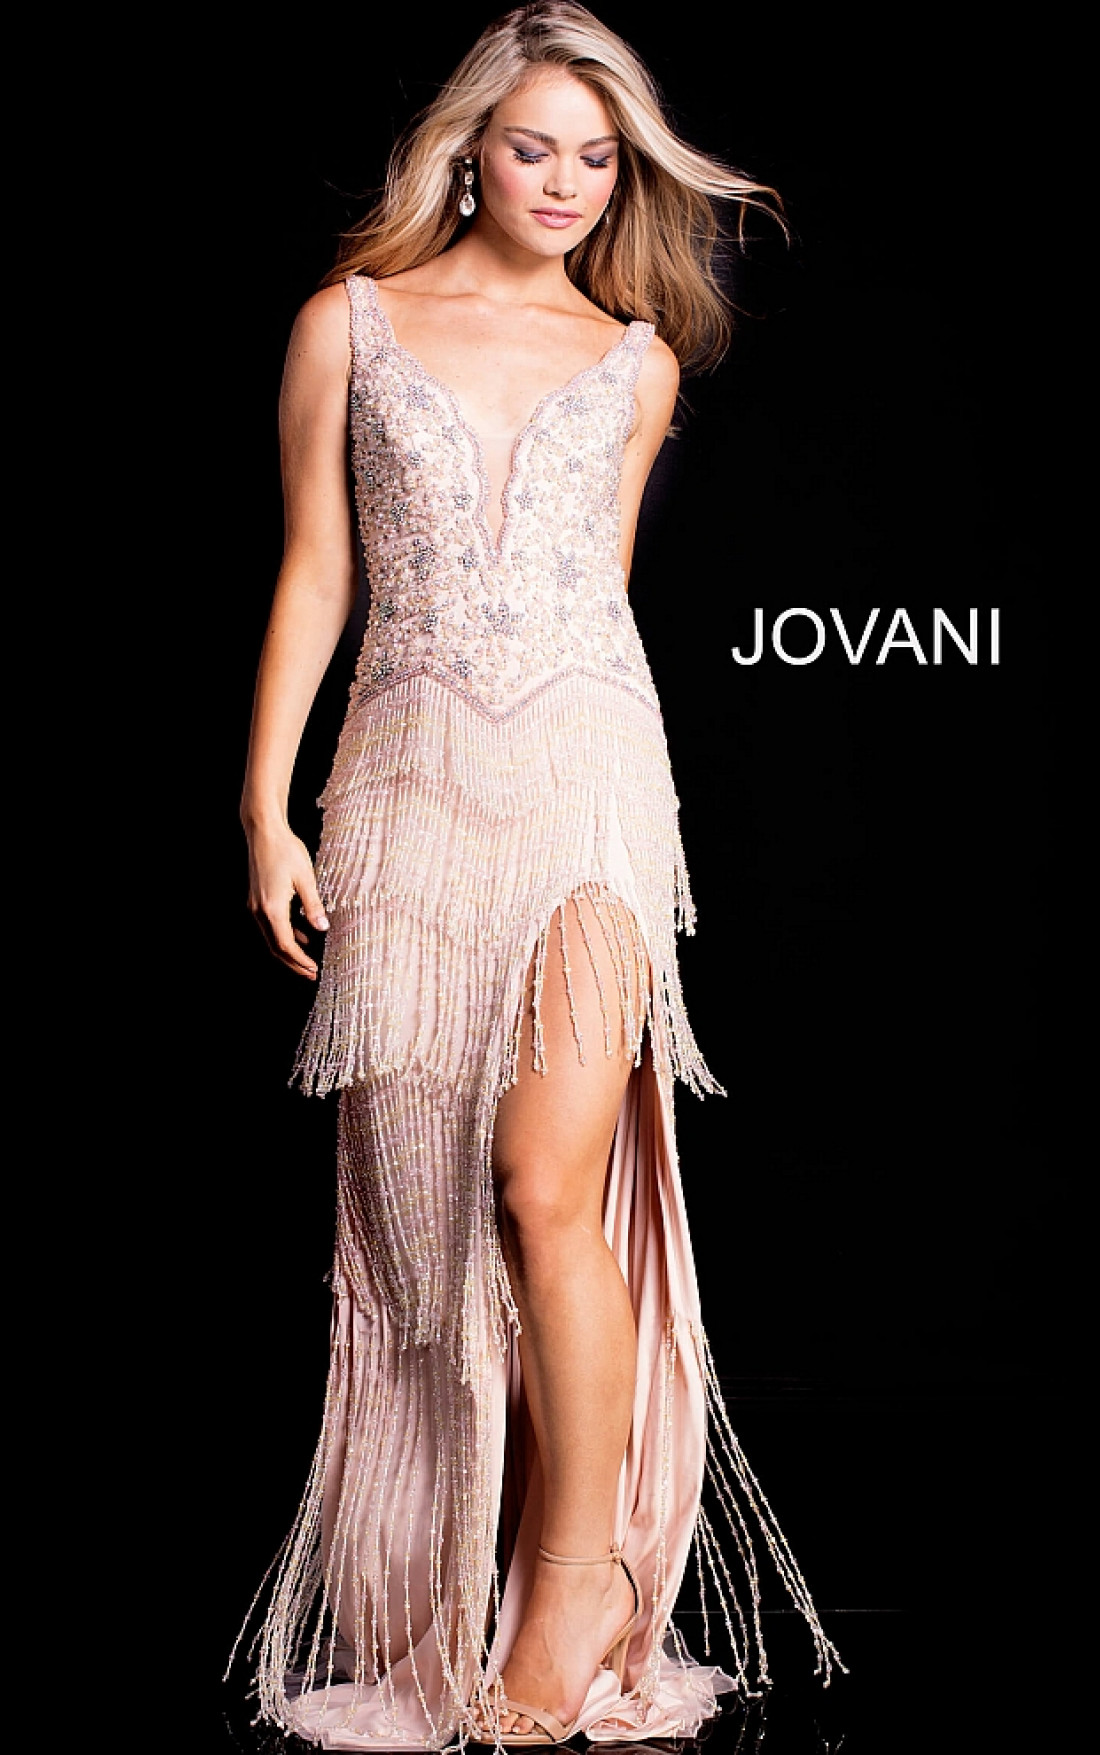 Jovani - Blush Embellished Sleeveless Dress (49833)